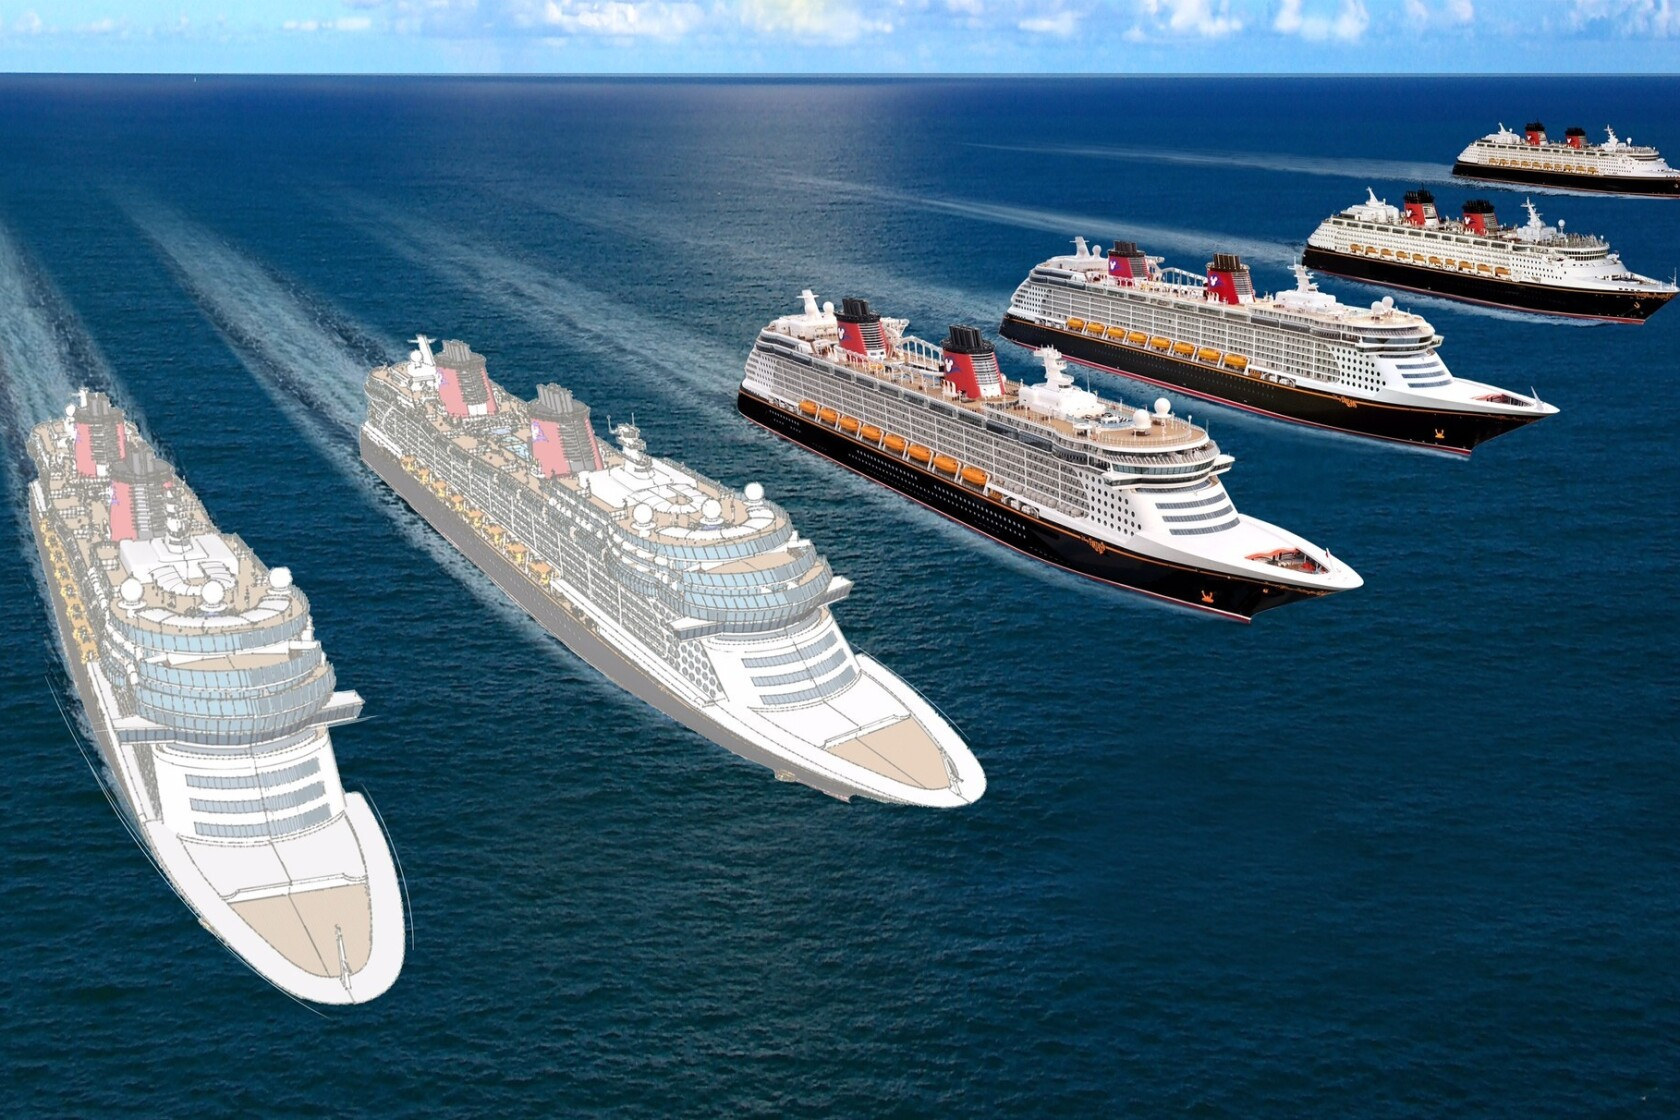 Disney Cruise 2020.Disney Cruise Line Adds Greece To Summer 2020 Plans Expands